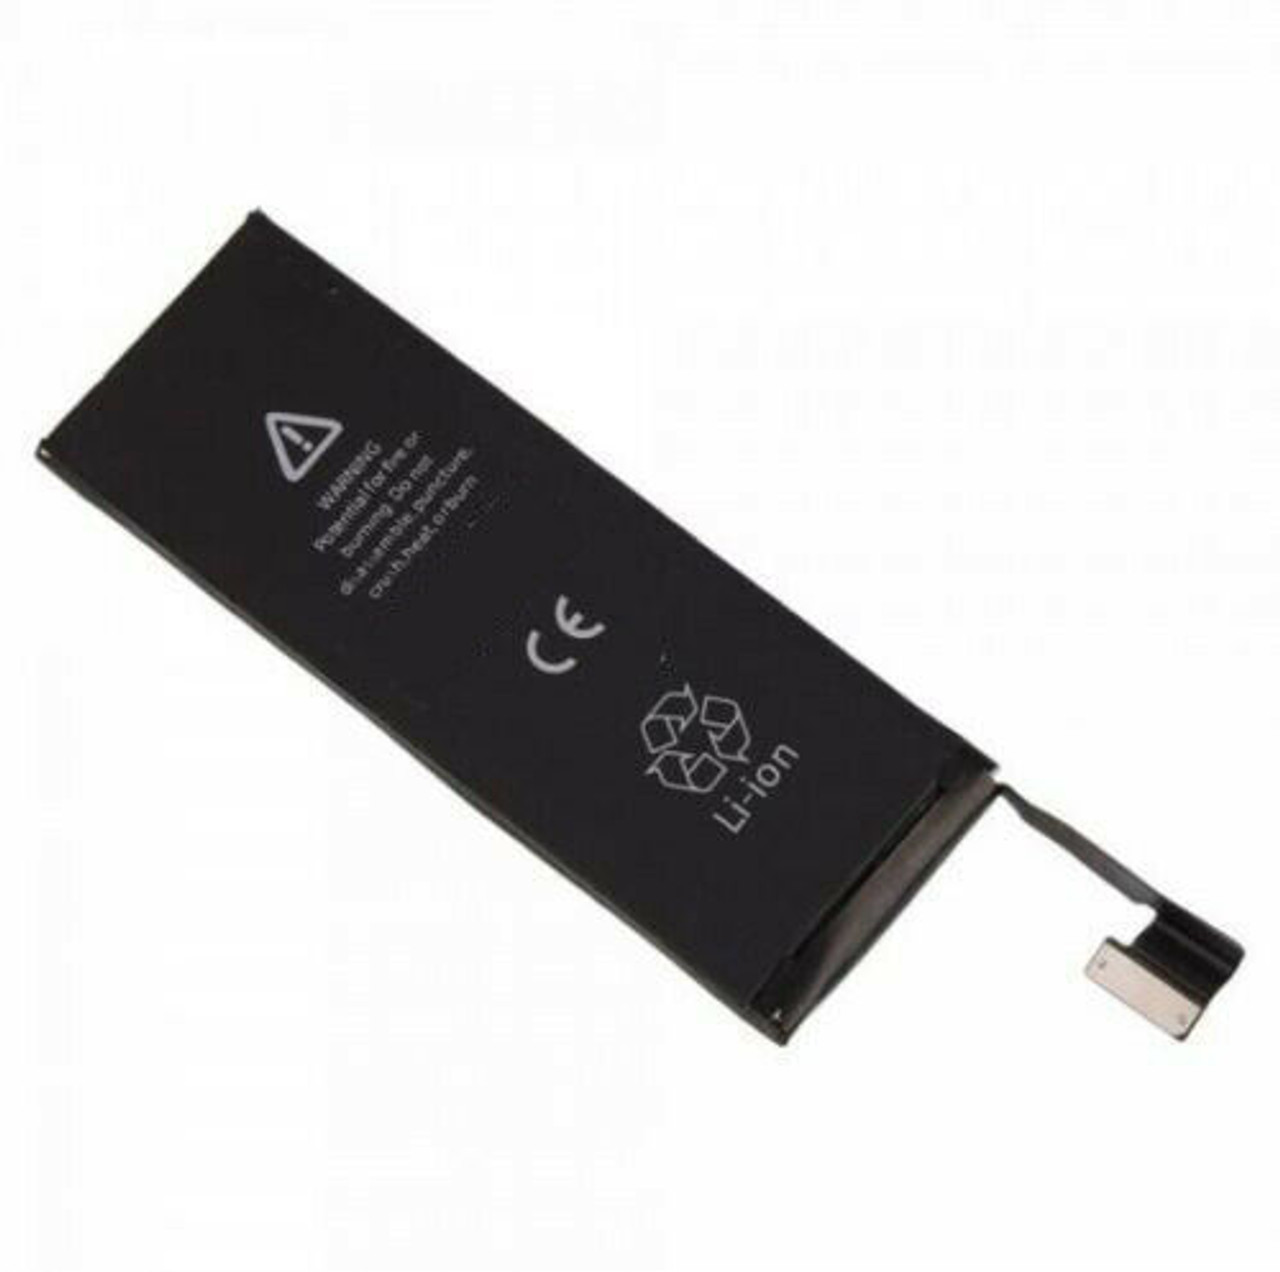 OEM SPEC 1440mAh Li-ion Battery Replacement with Flex for iPhone 5 5G + Tools